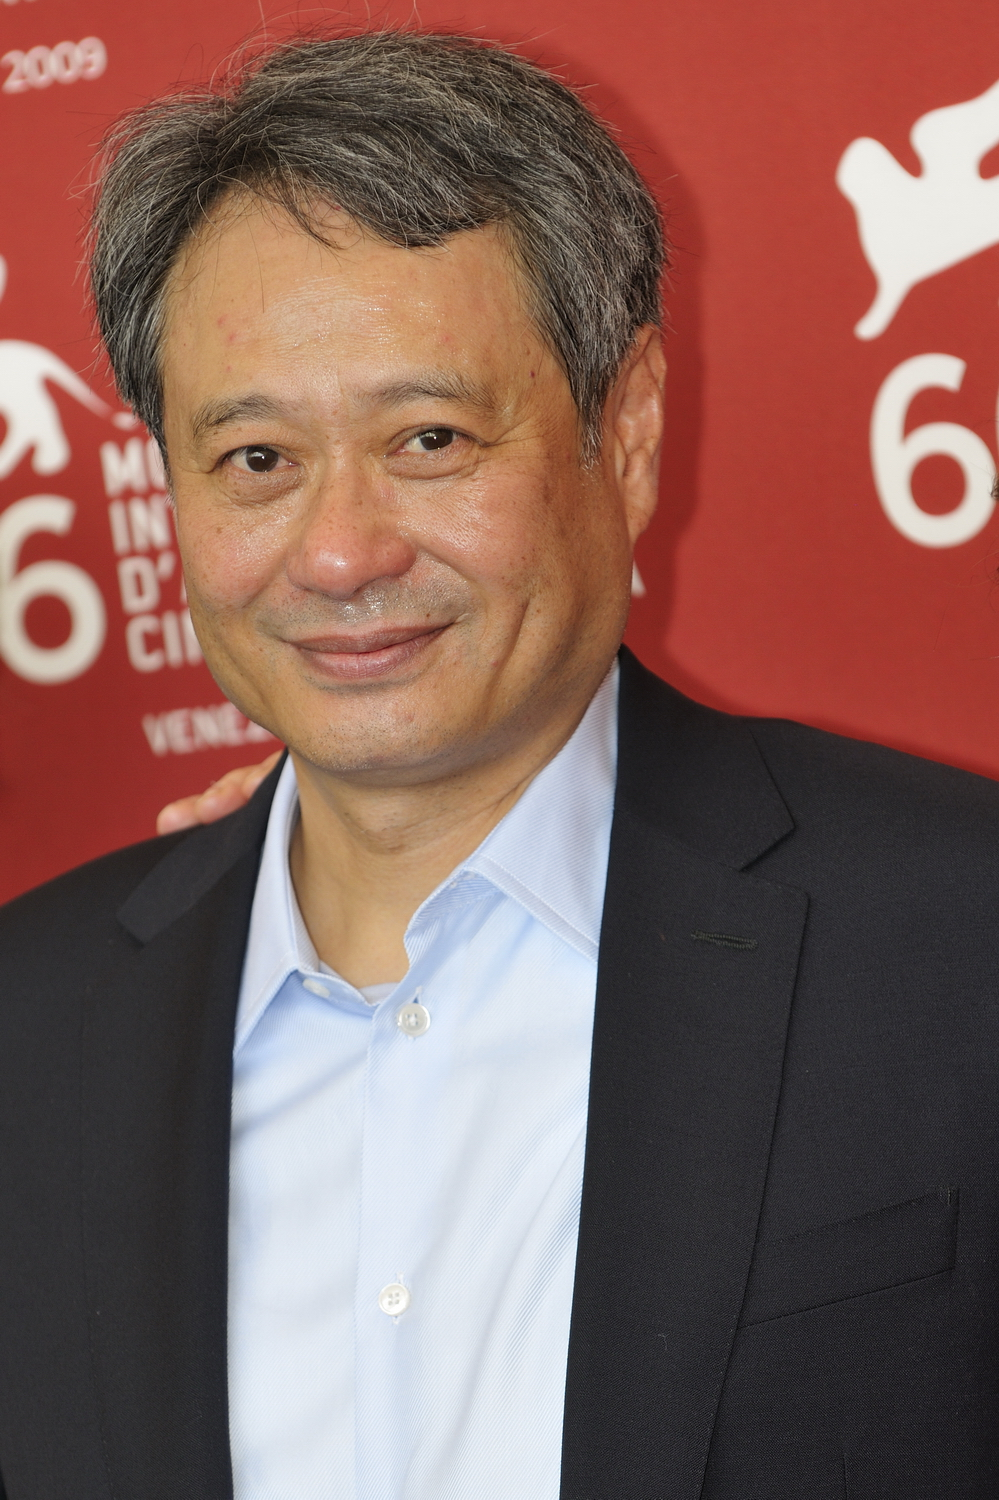 ang lee filmsang lee hulk, ang lee films, ang lee bio, ang lee biography, ang lee director, ang lee interview billy lynn, ang lee zodiac, ang lee regista, ang lee wife, ang lee imdb, ang lee oscar, ang lee movies, ang lee lust caution, ang lee net worth, ang lee sense and sensibility, ang lee life of pi, ang lee billy lynn, ang lee interview, ang lee brokeback mountain, ang lee ice storm